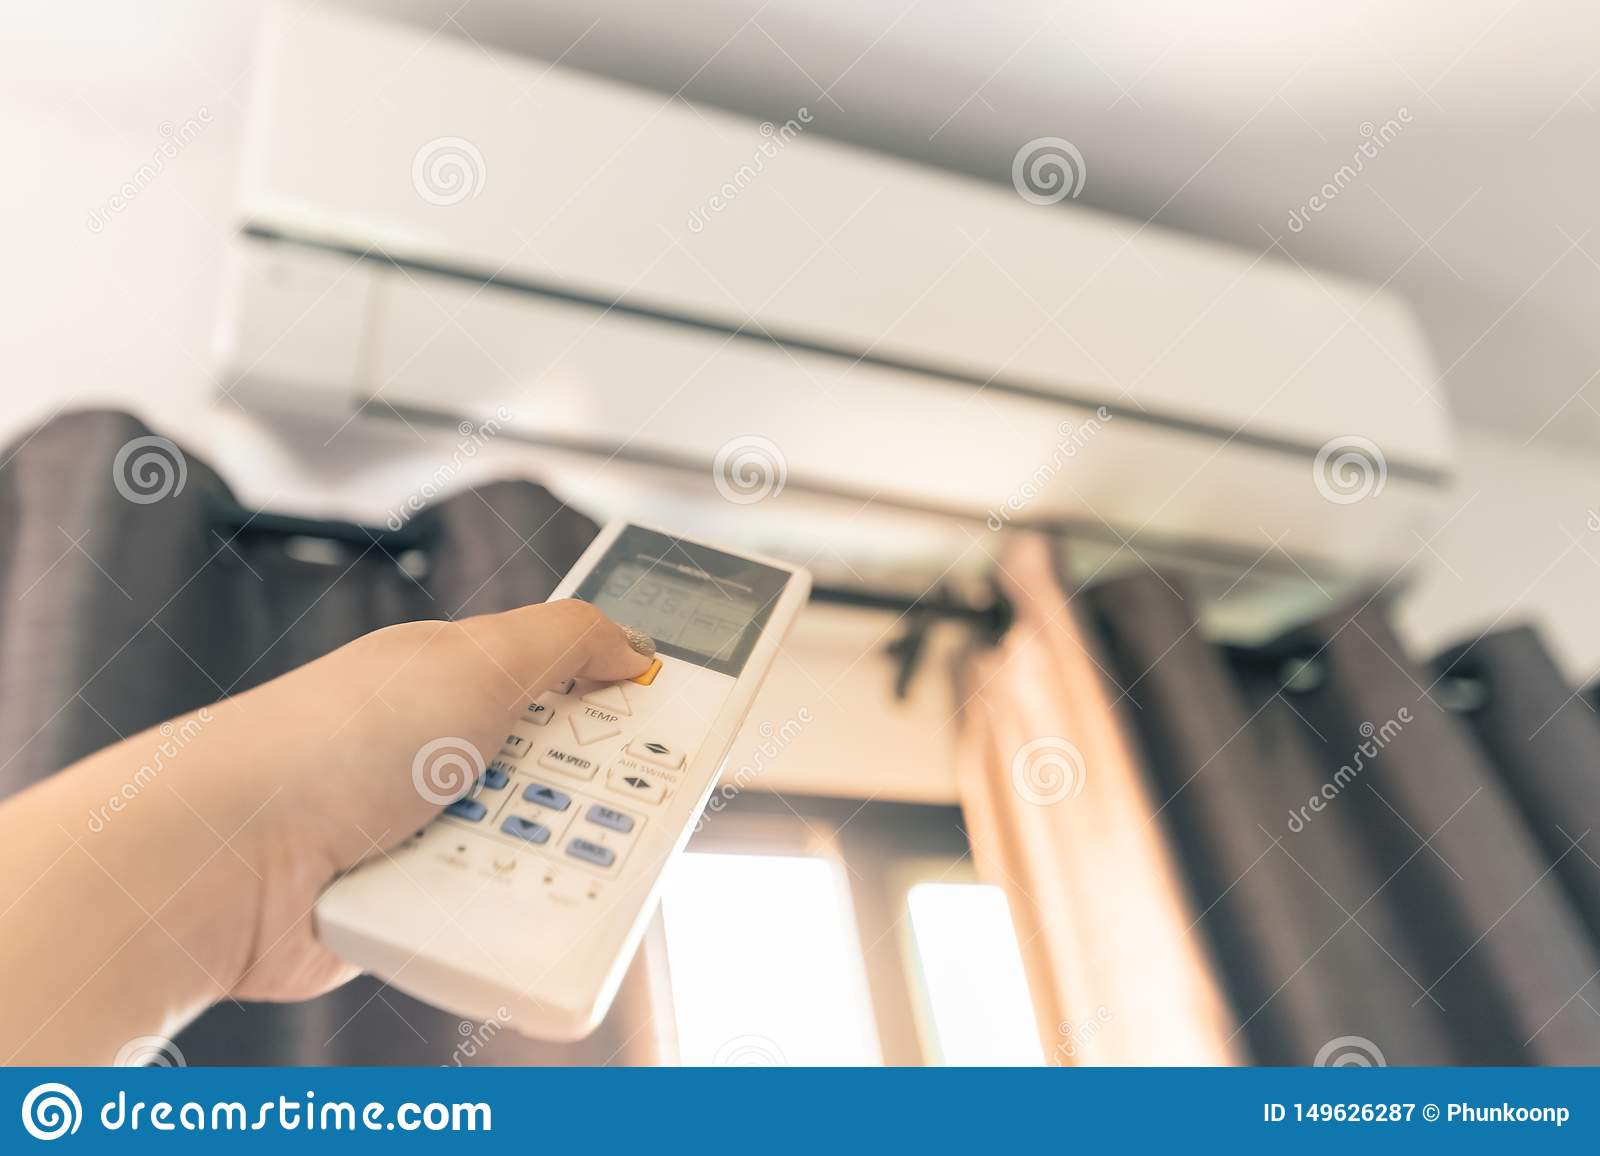 Use the Remote Control to Turn On the Air Conditioner